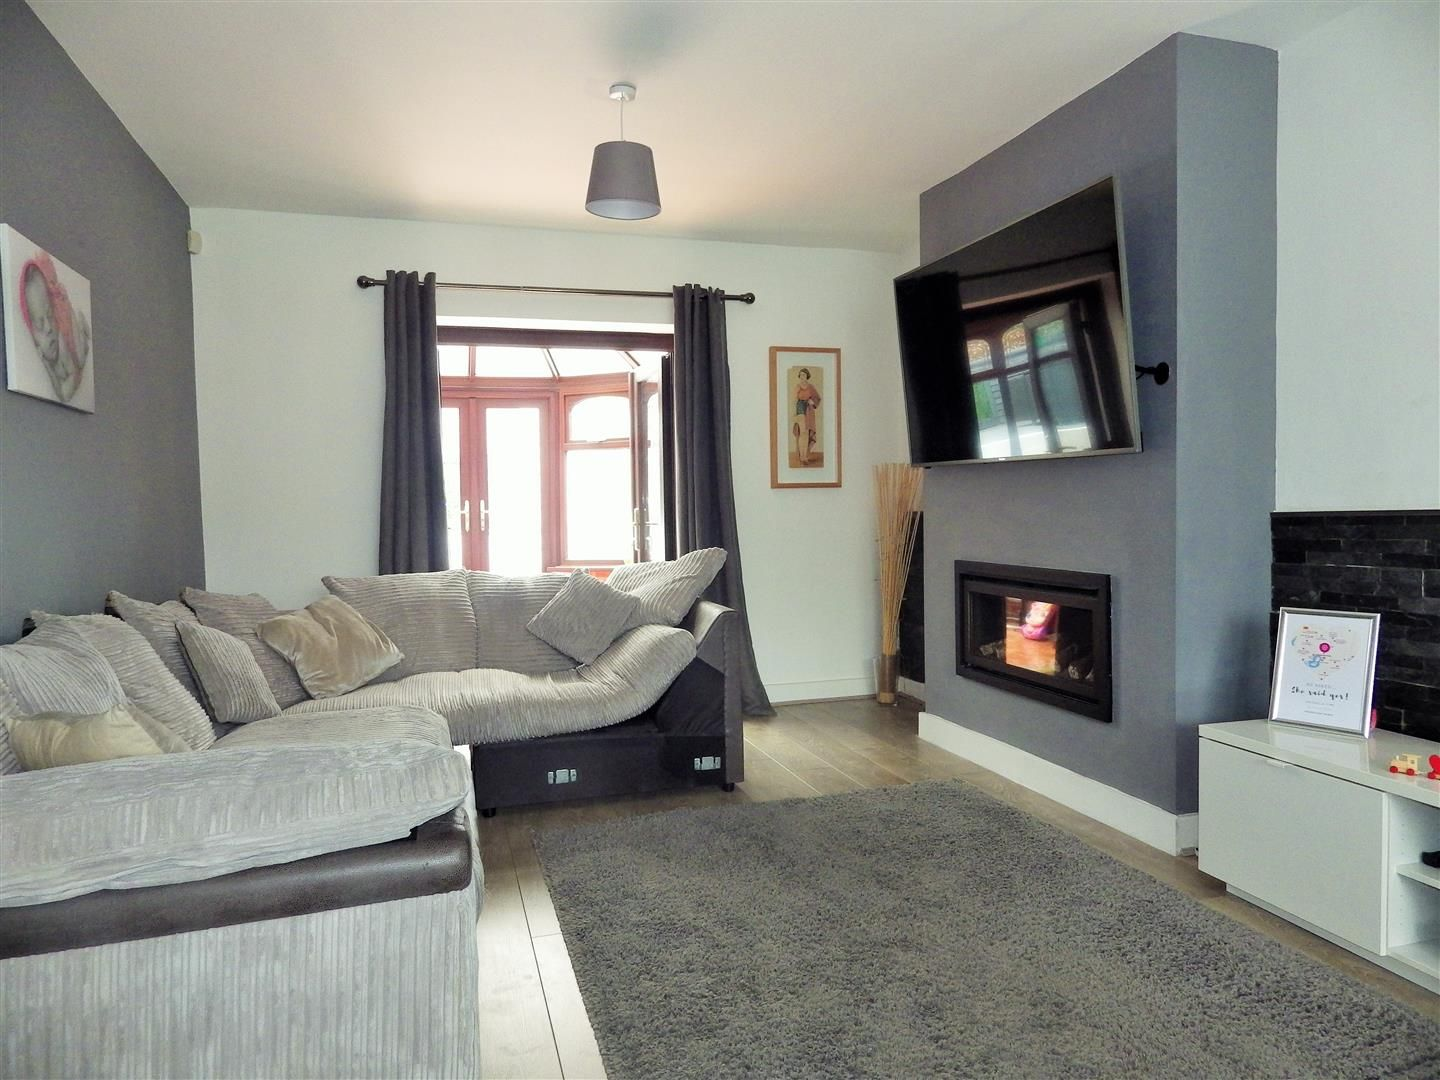 3 bed semi-detached for sale in Hasbury  - Property Image 4